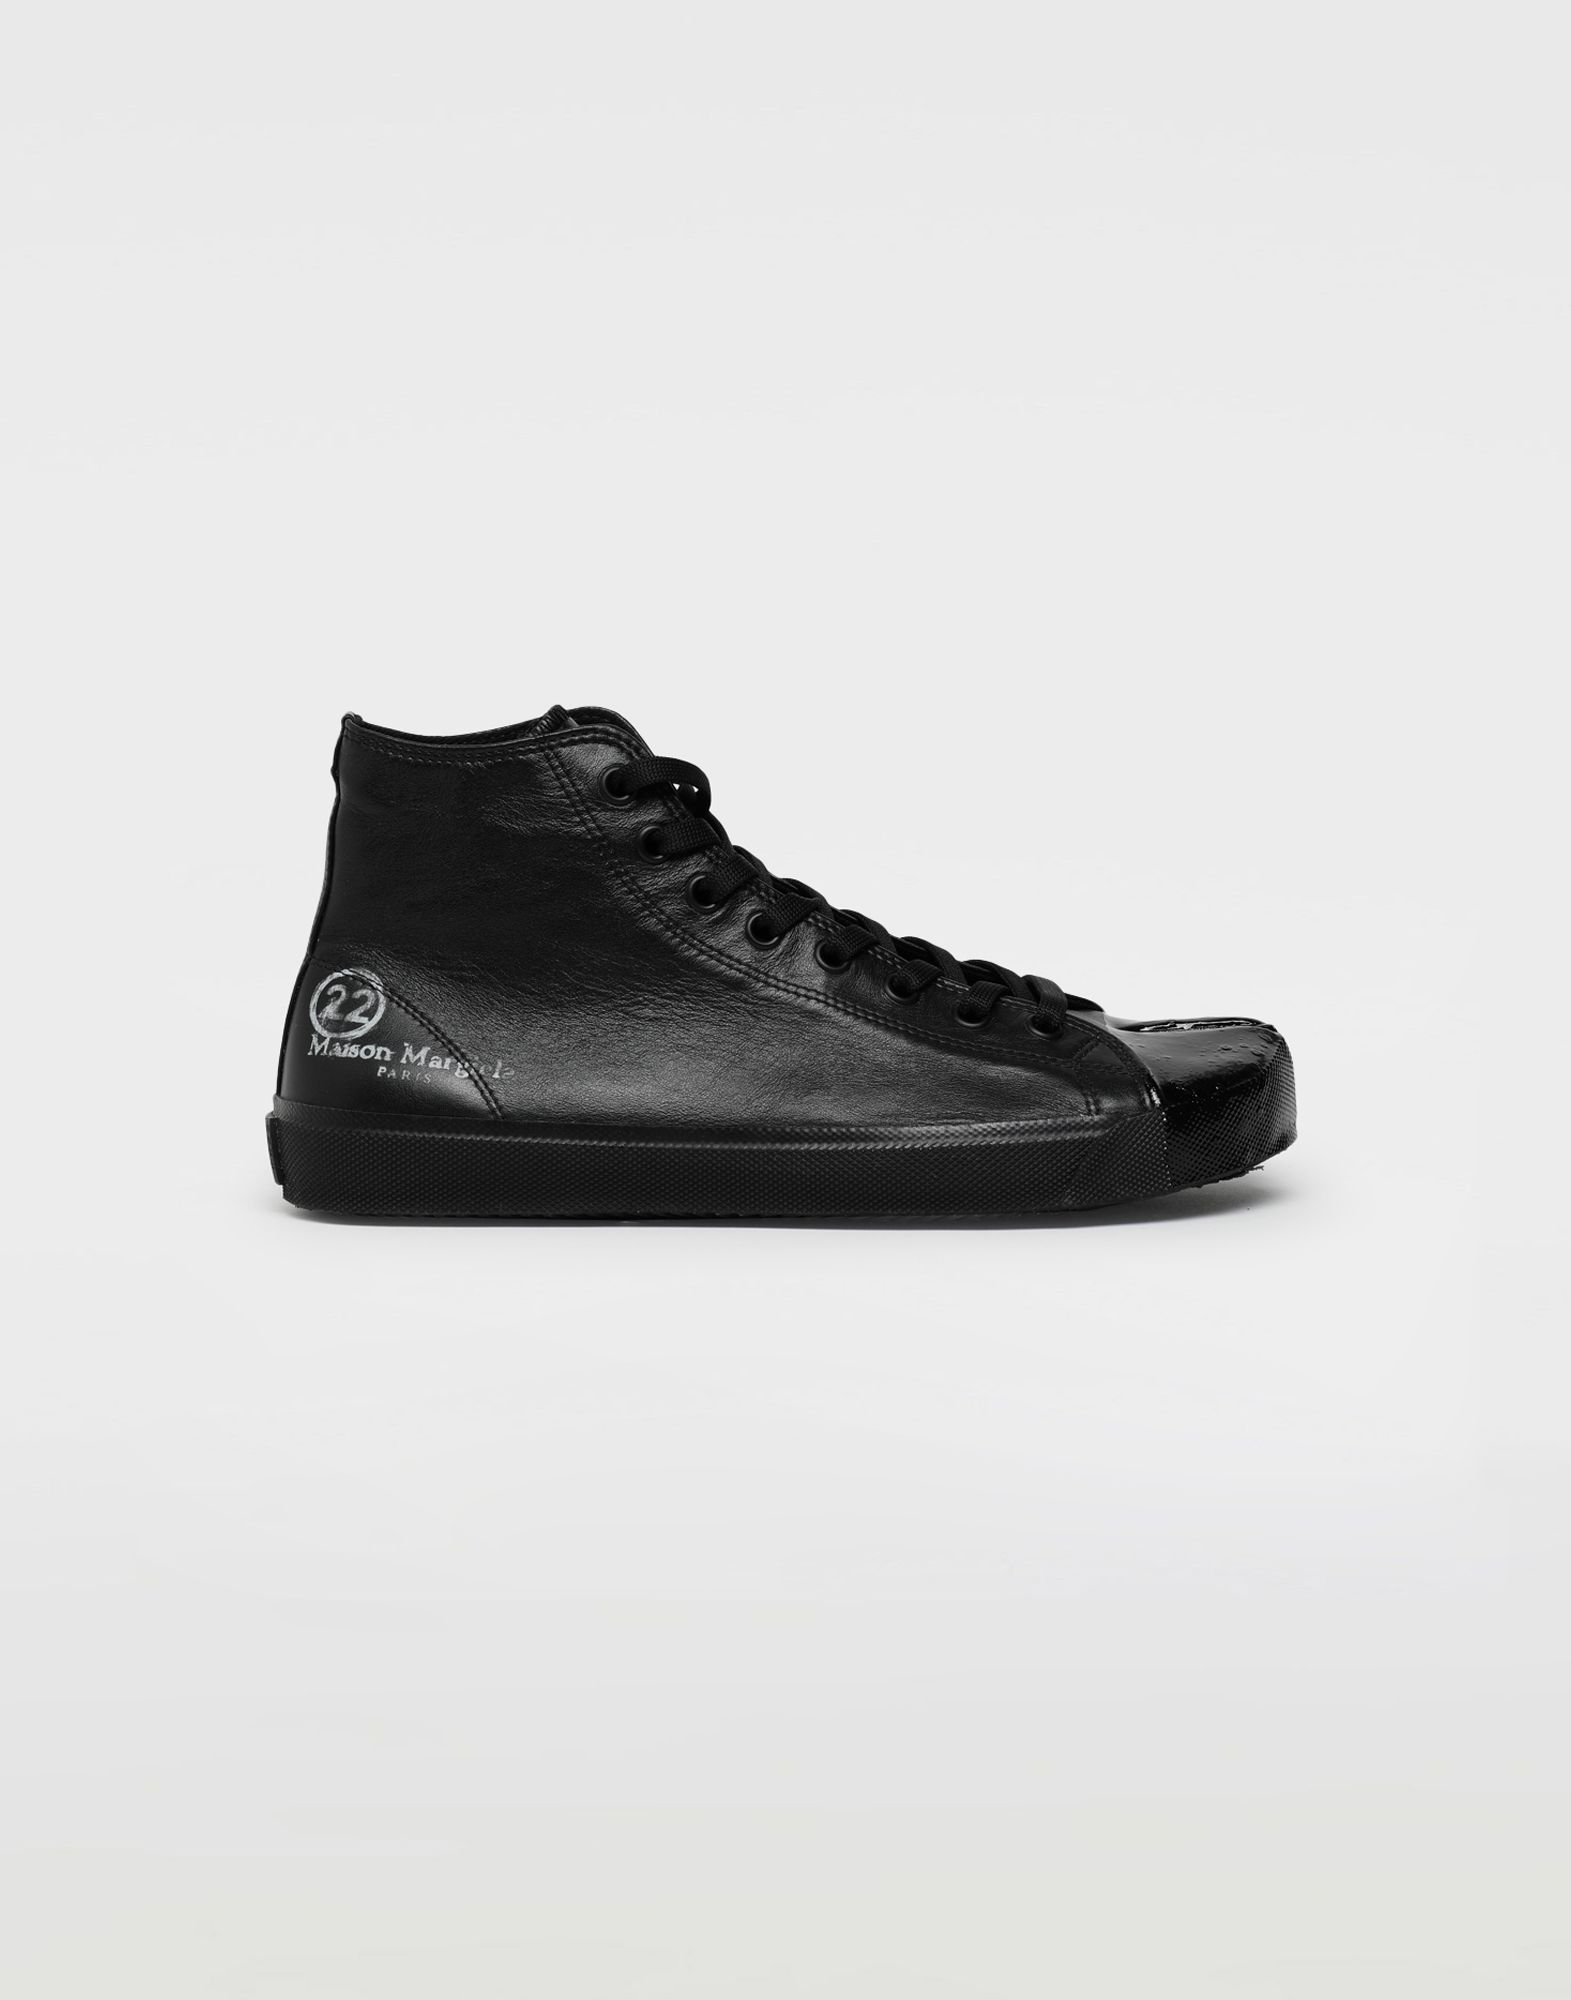 MAISON MARGIELA Tabi high-top sneakers Sneakers Tabi Man f